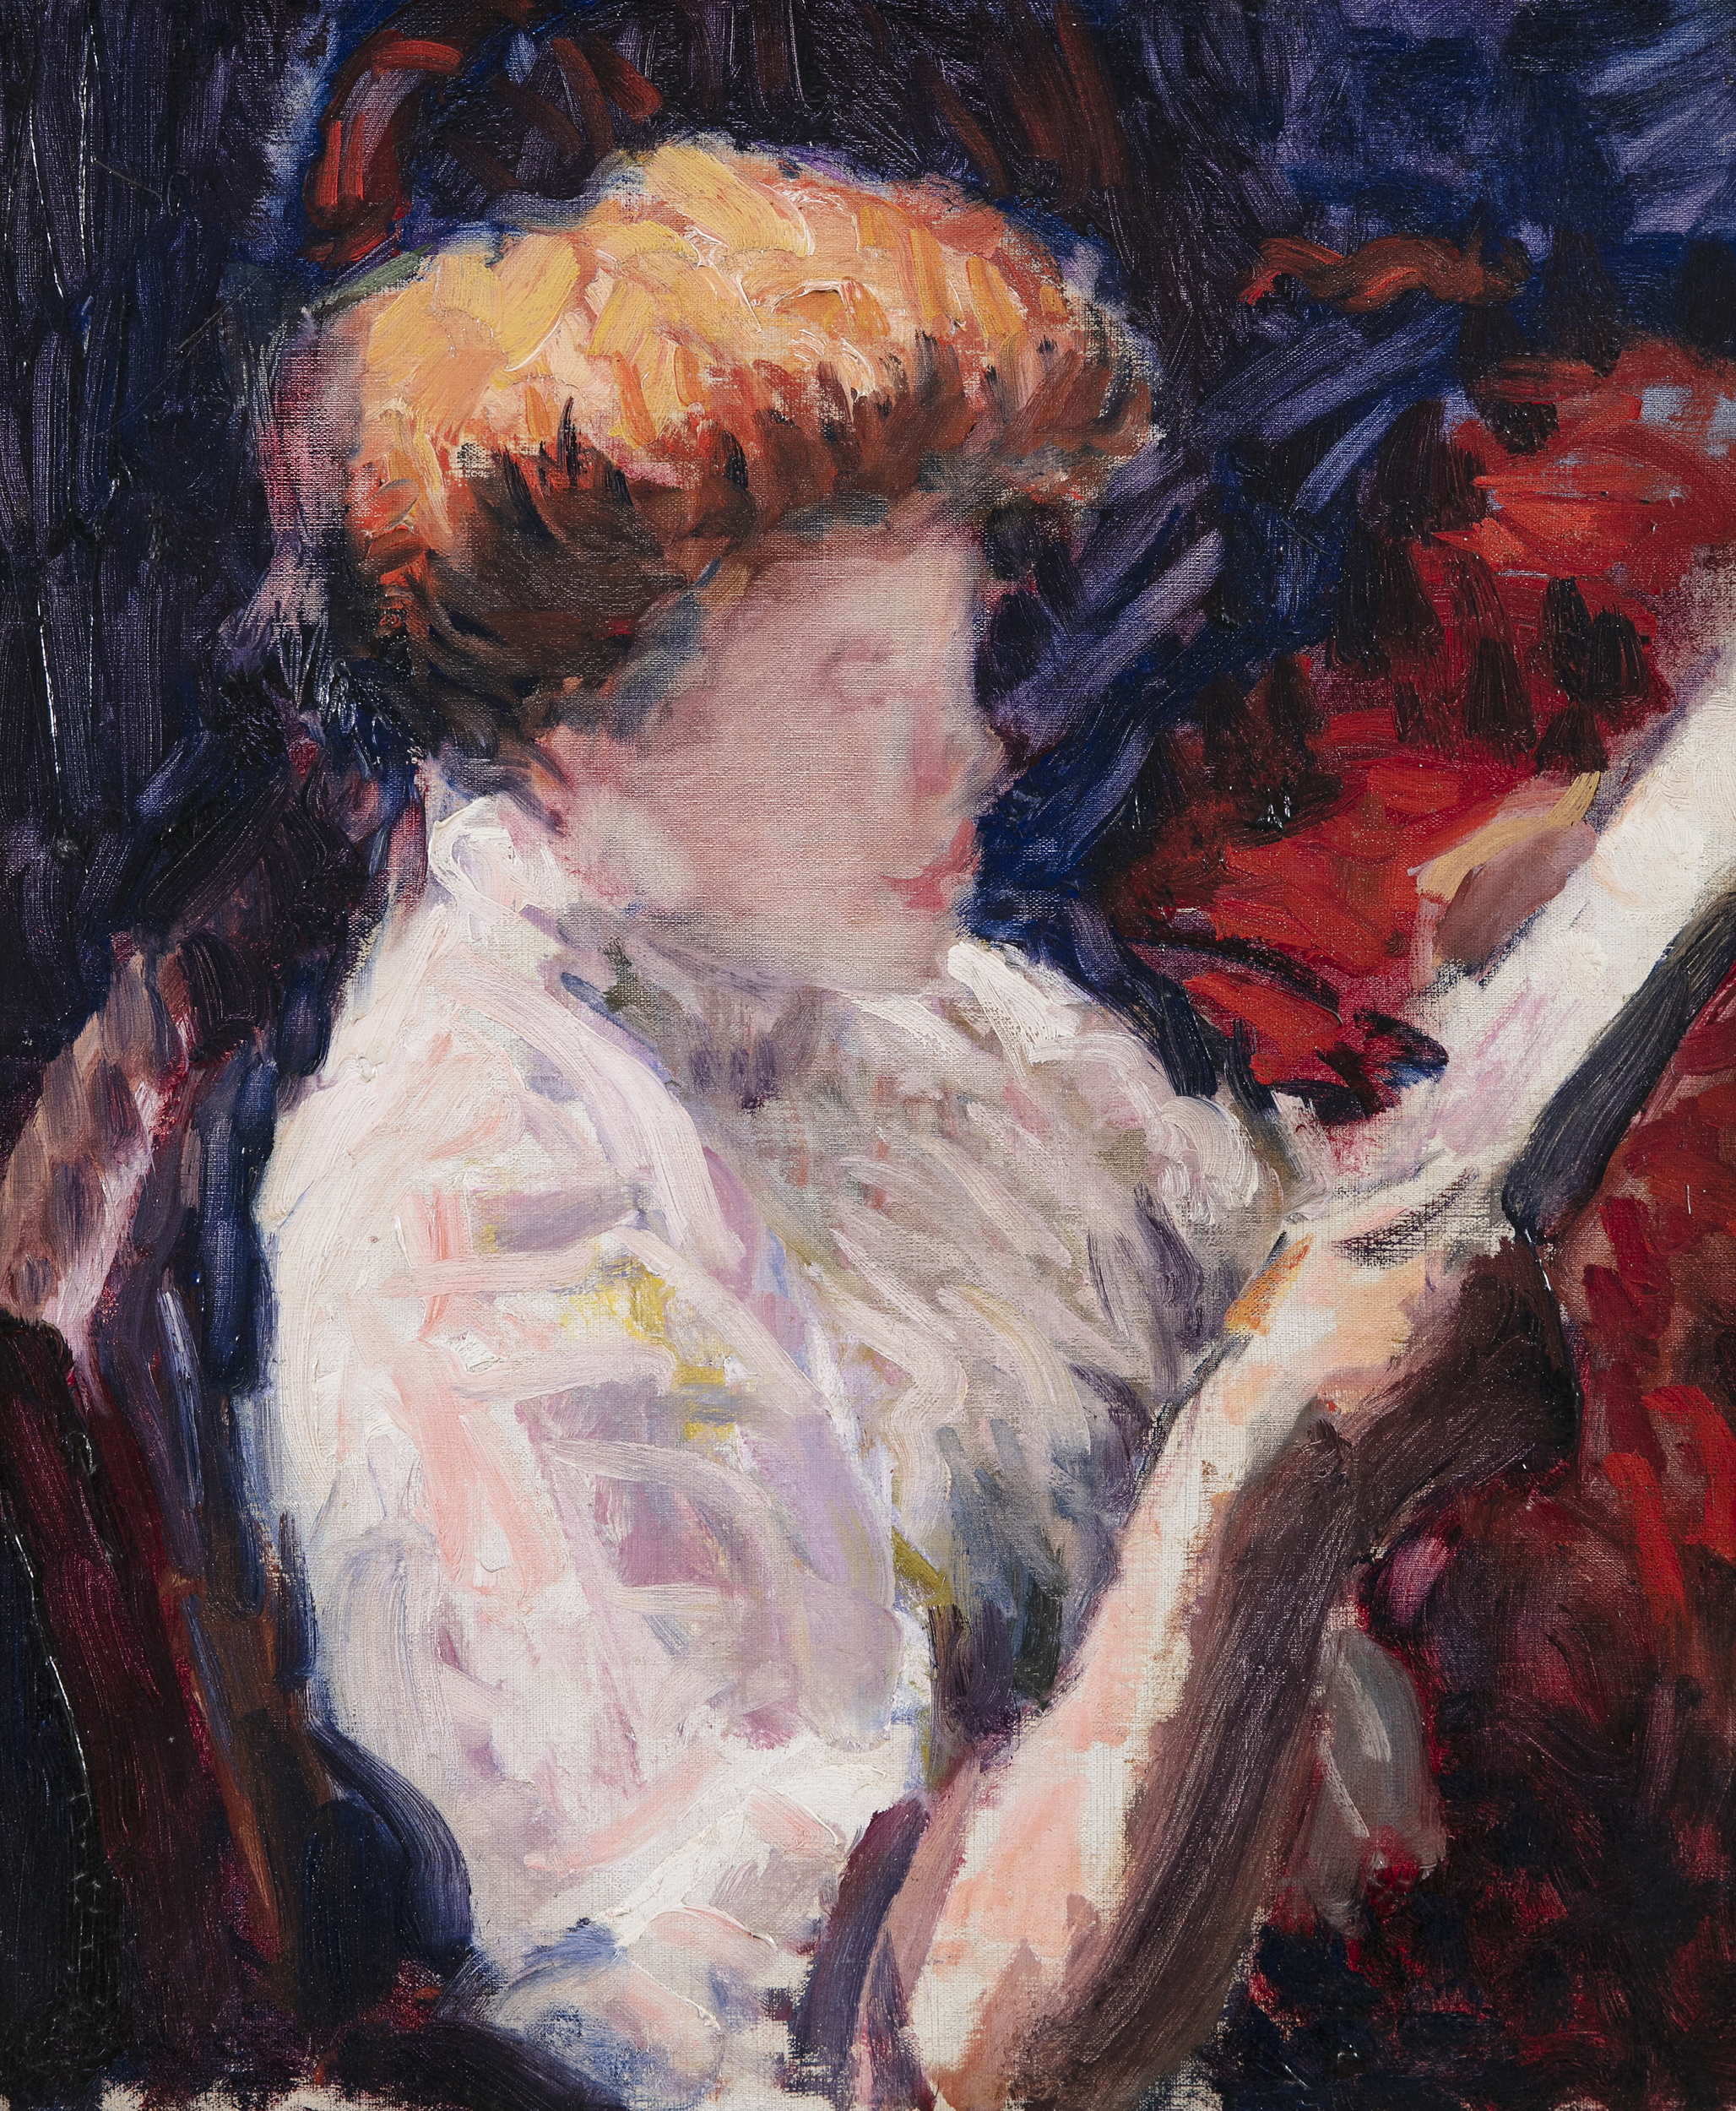 Lot 39 - Roderic O'Conor (1860-1940)Femme Lisant or 'Woman Reading' (c.1907/8)Oil on canvas, 54.6 x 45.7cm (